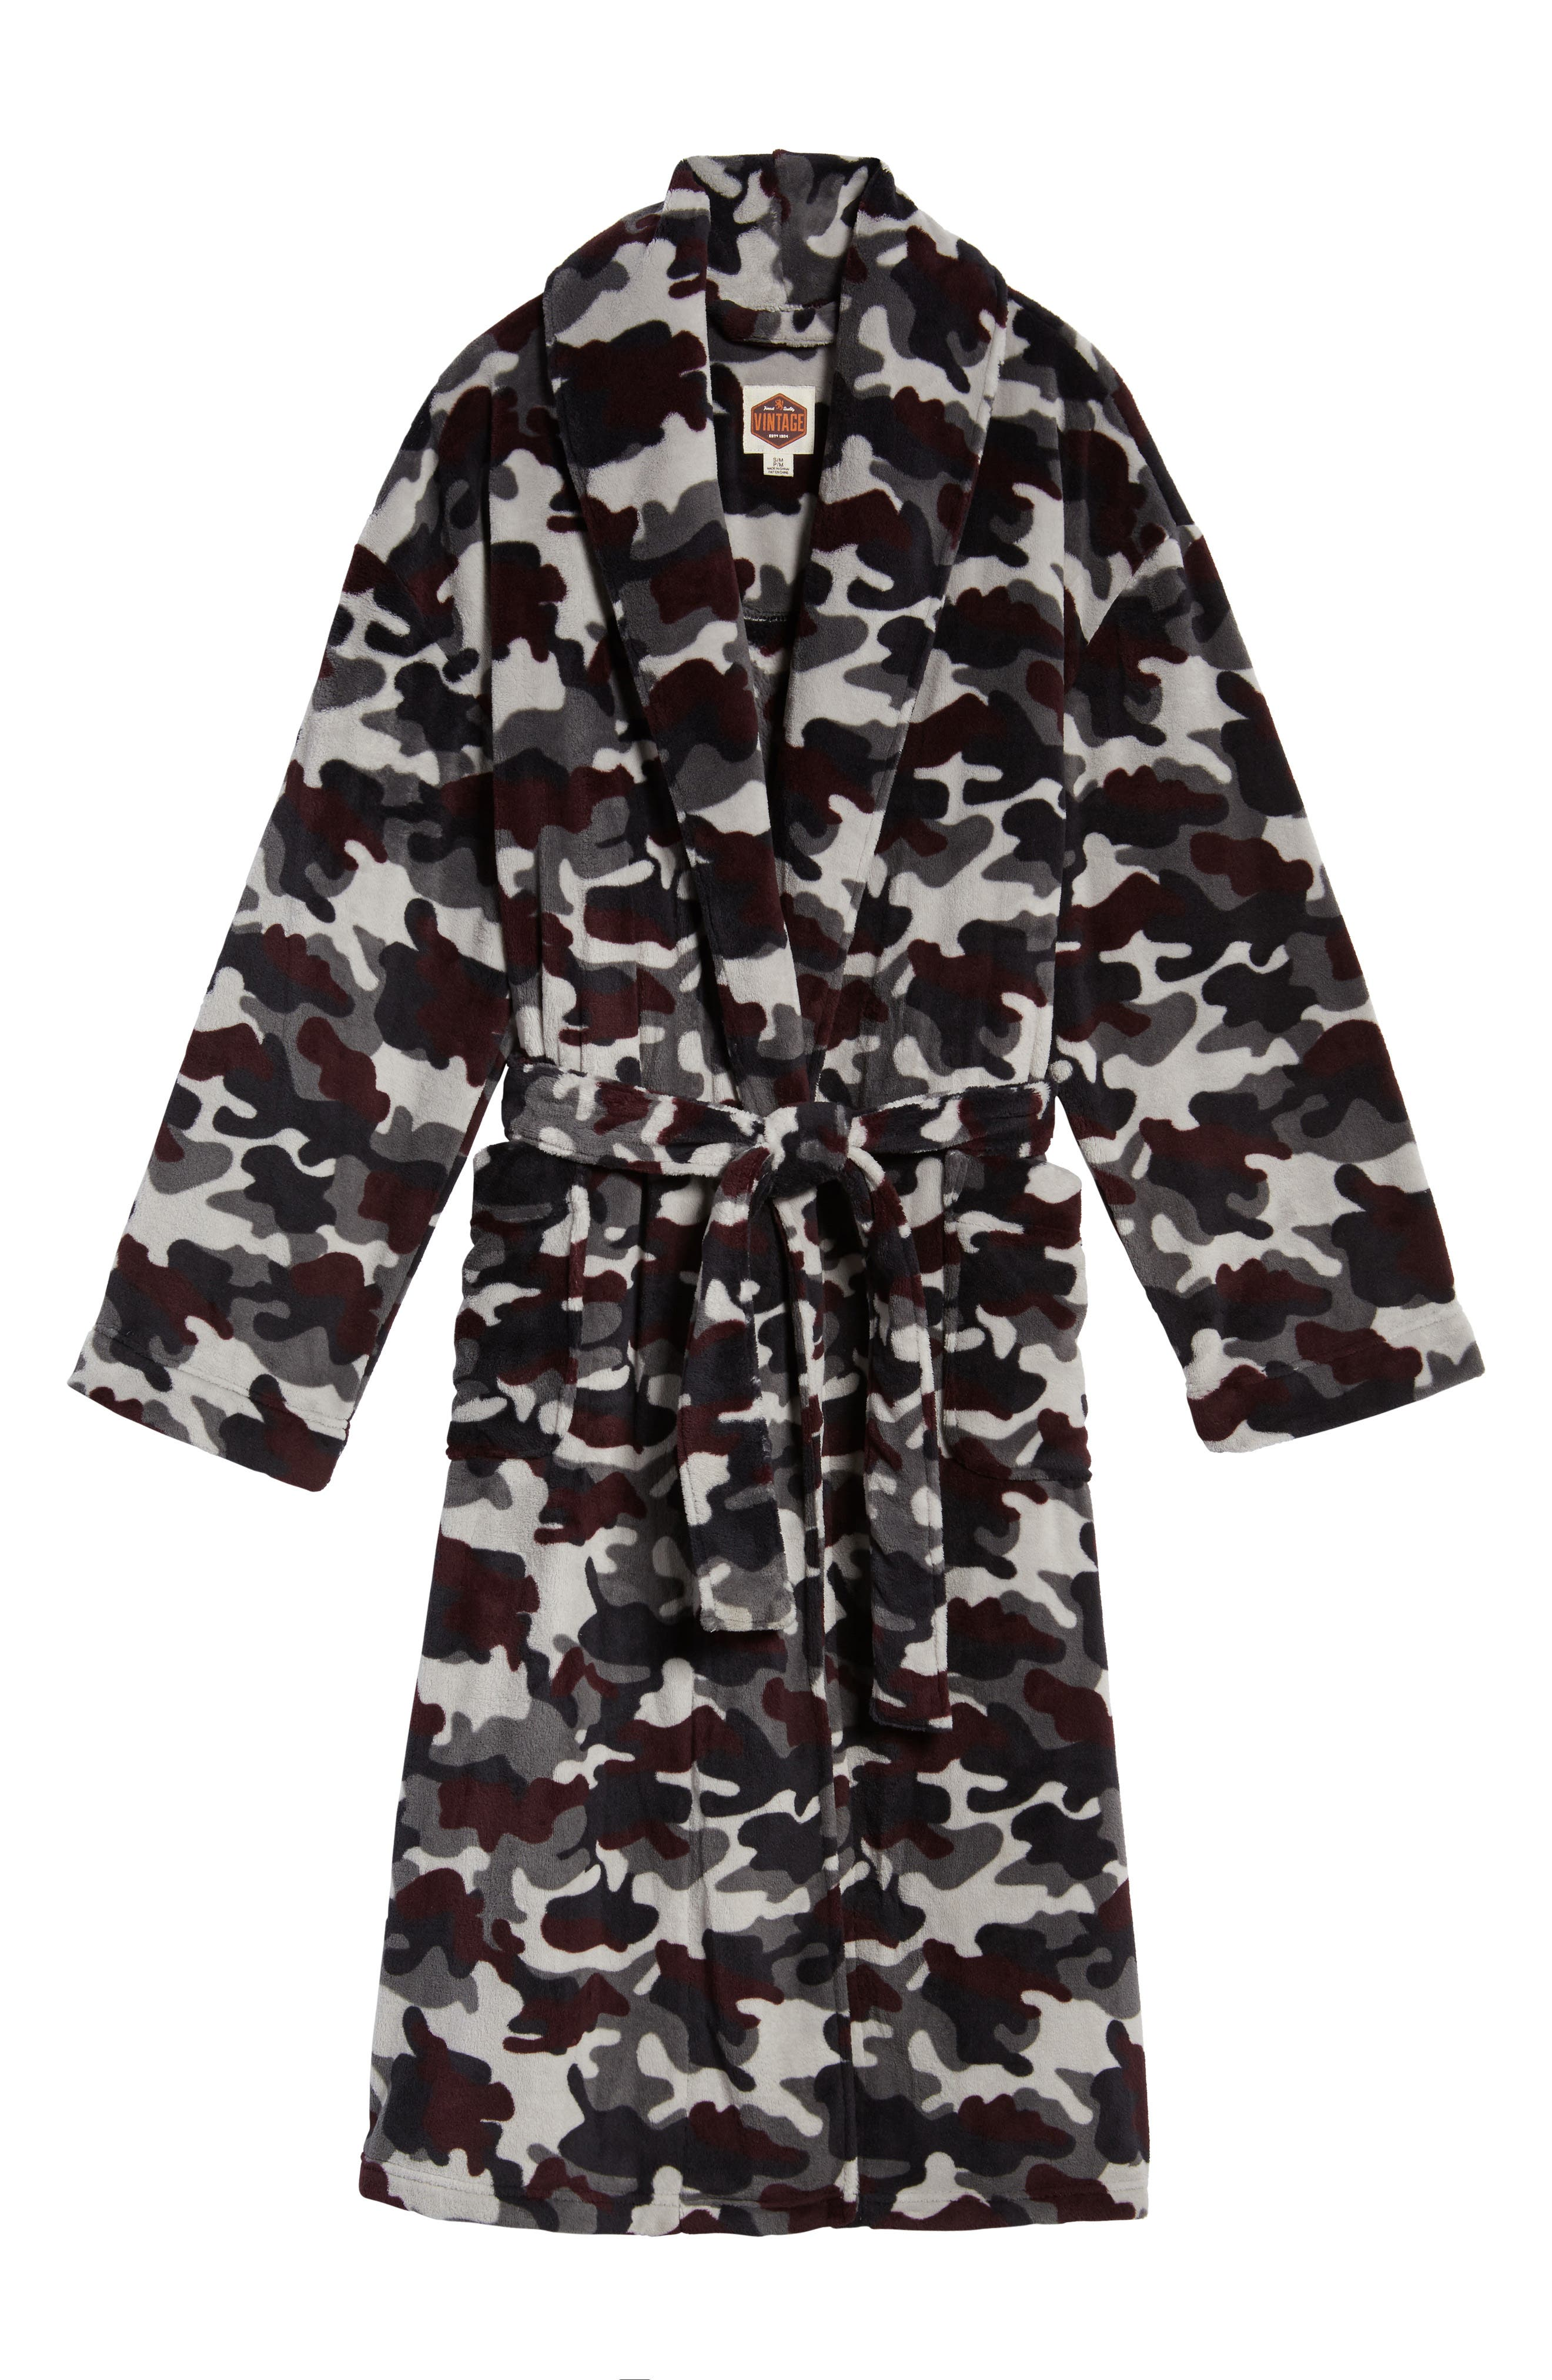 Cold Conquest Robe,                             Alternate thumbnail 6, color,                             Charcoal Camo